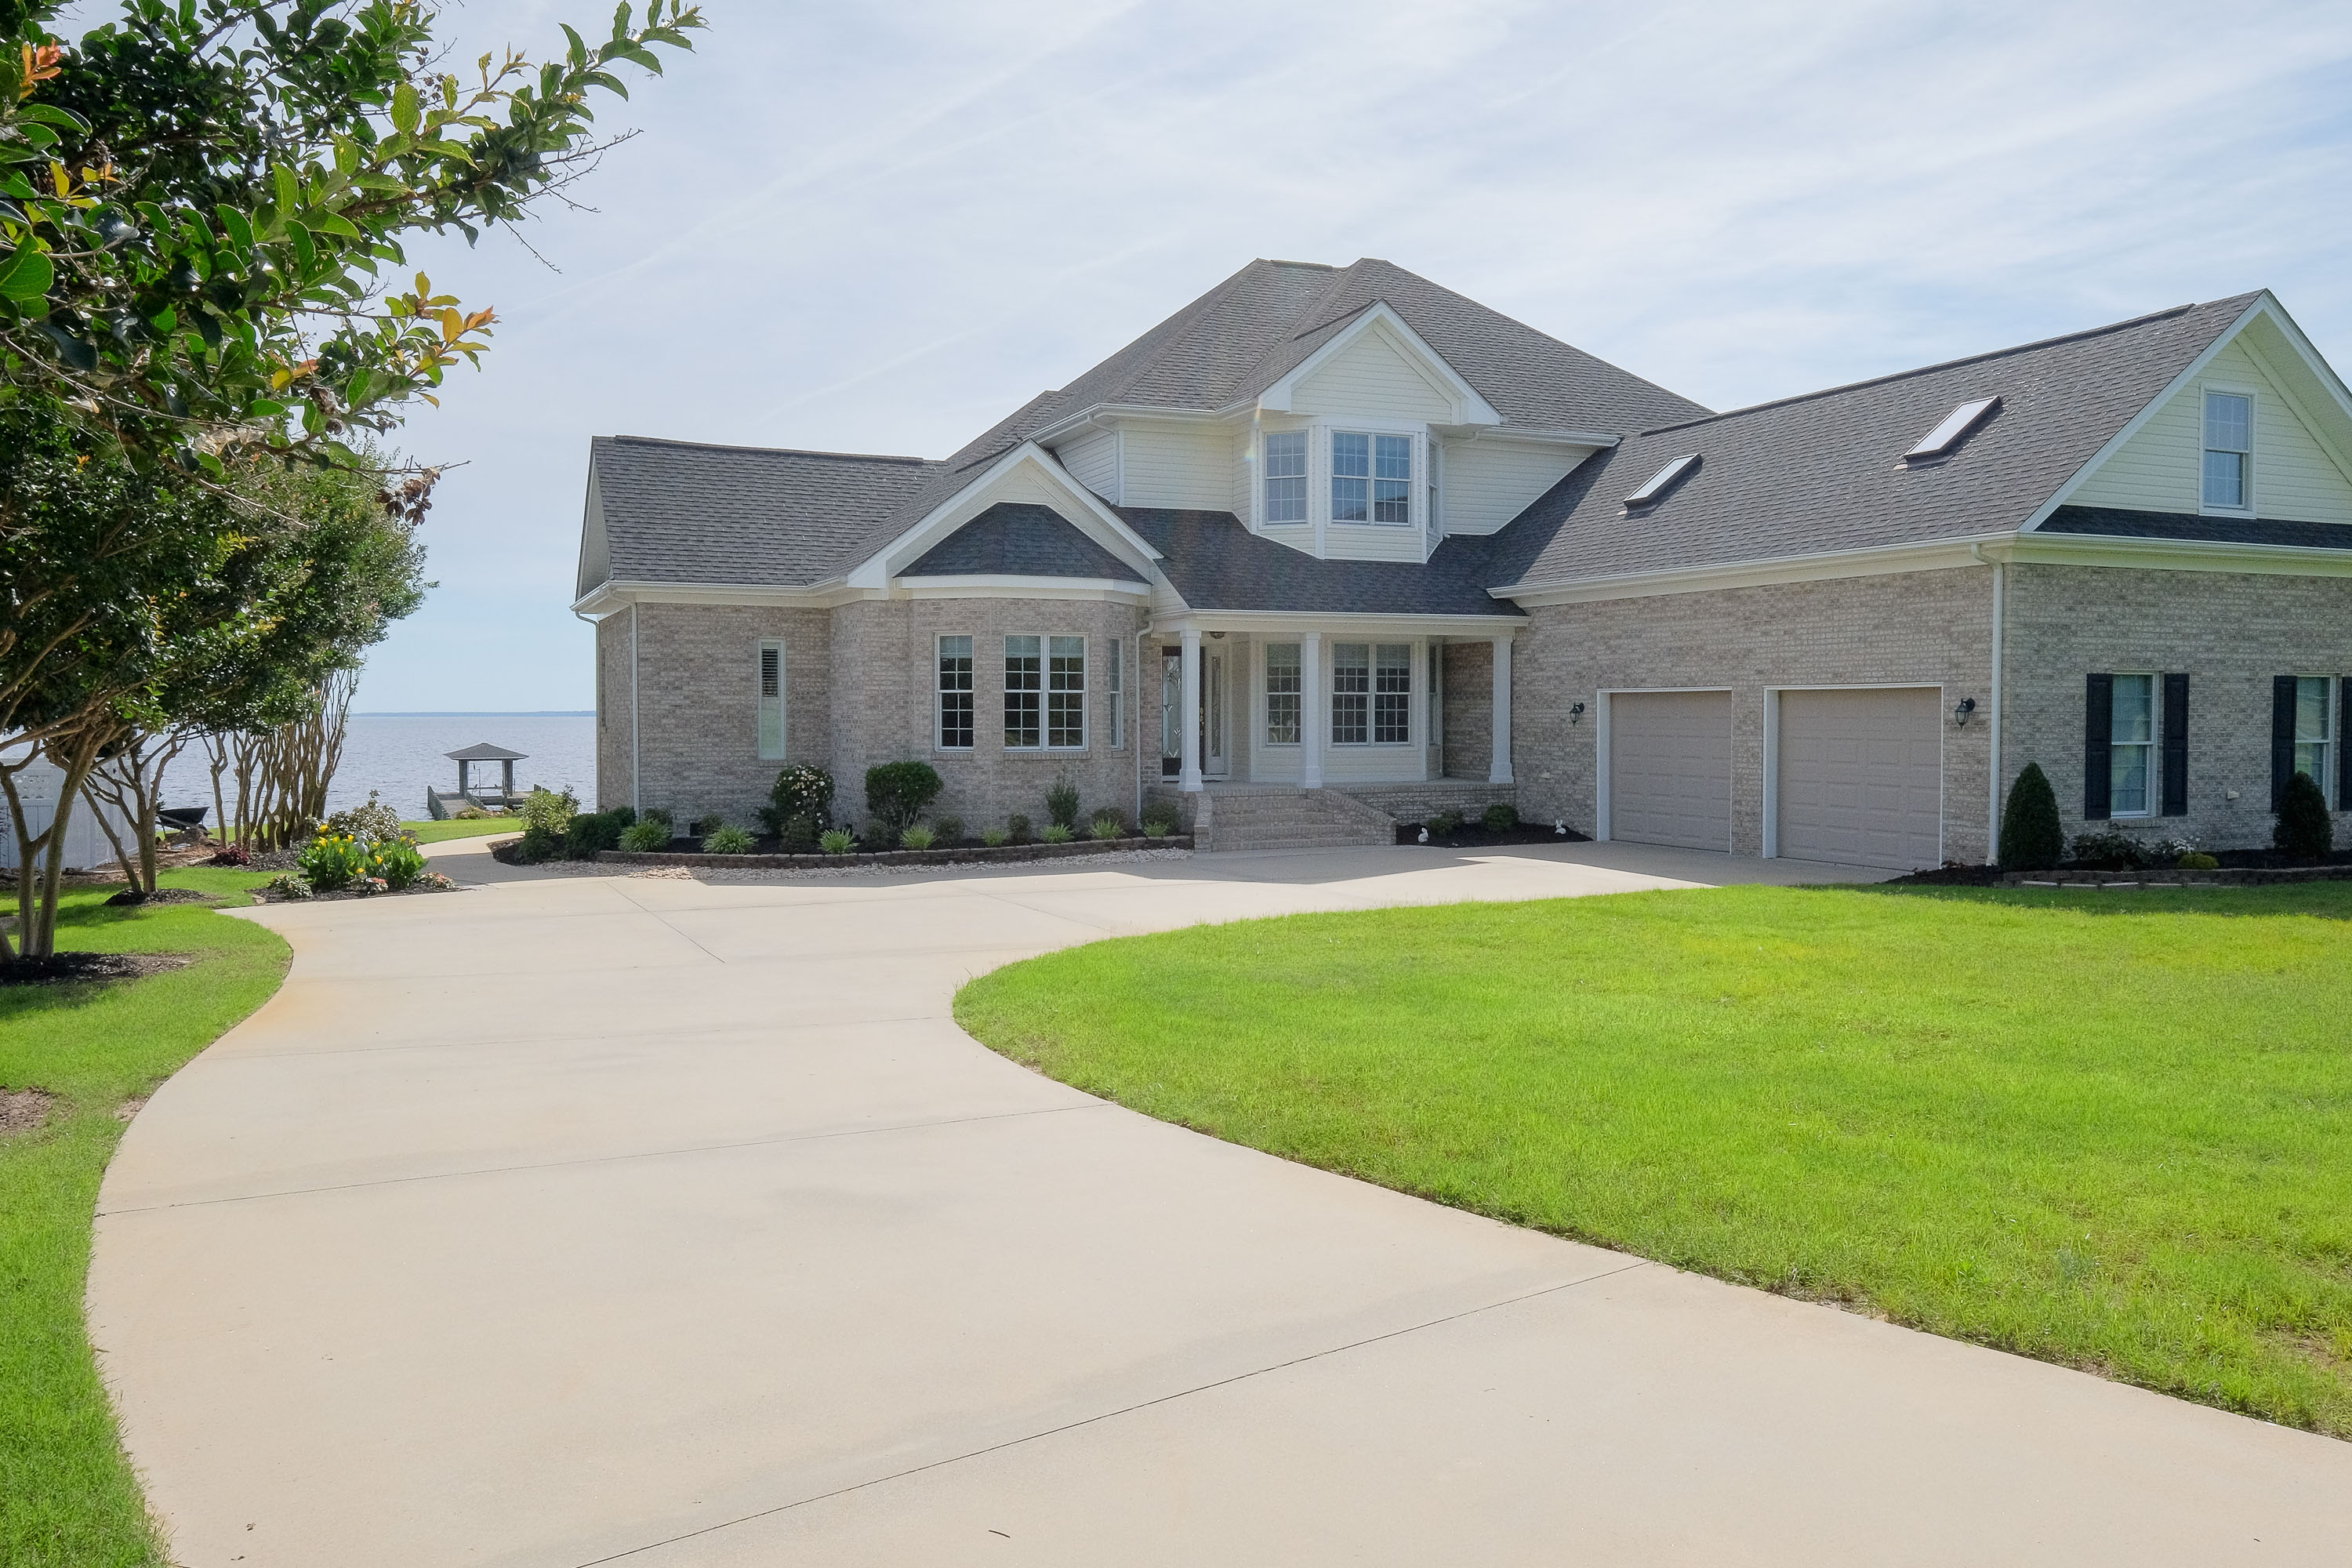 Single Family Home for Sale at PRISTINE WATERFRONT 358 Bay Point Dr Edenton, North Carolina 27932 United States